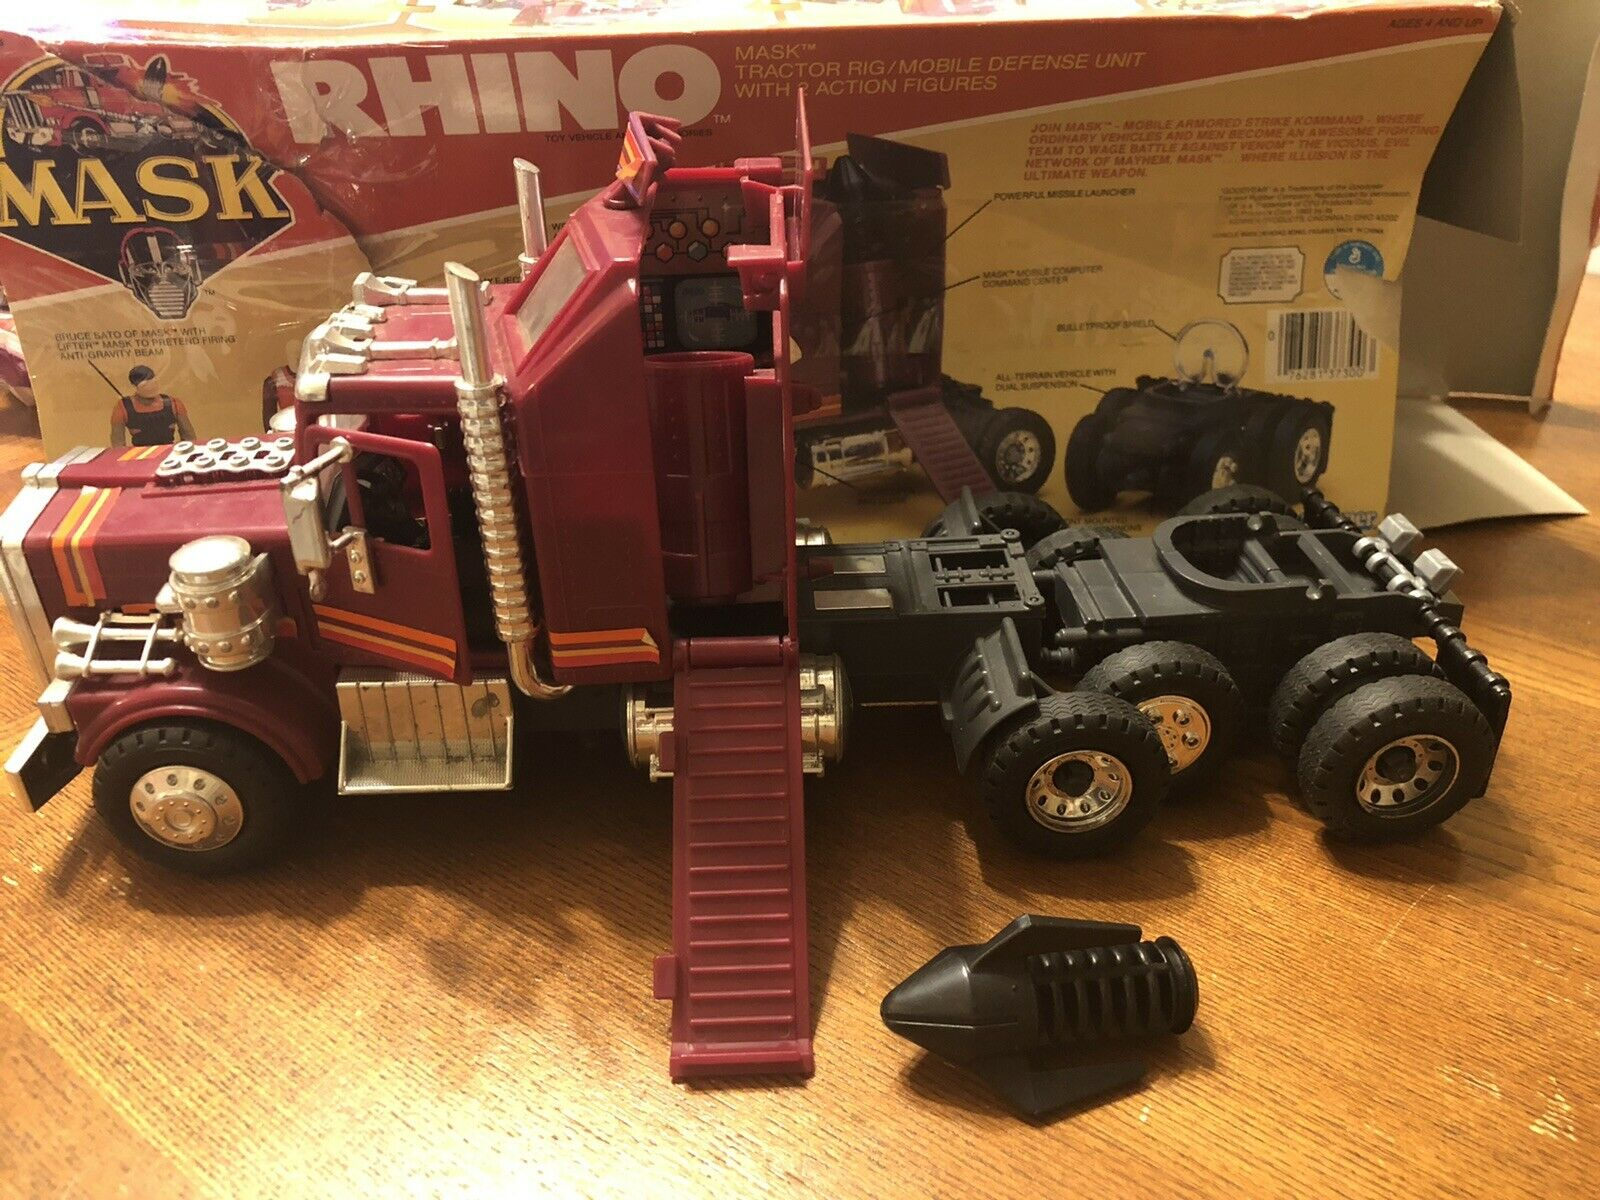 M.A.S.K. MASK RHINO Kenner legetøjs Tractor Rig Mobile Defense Unit W/ Box